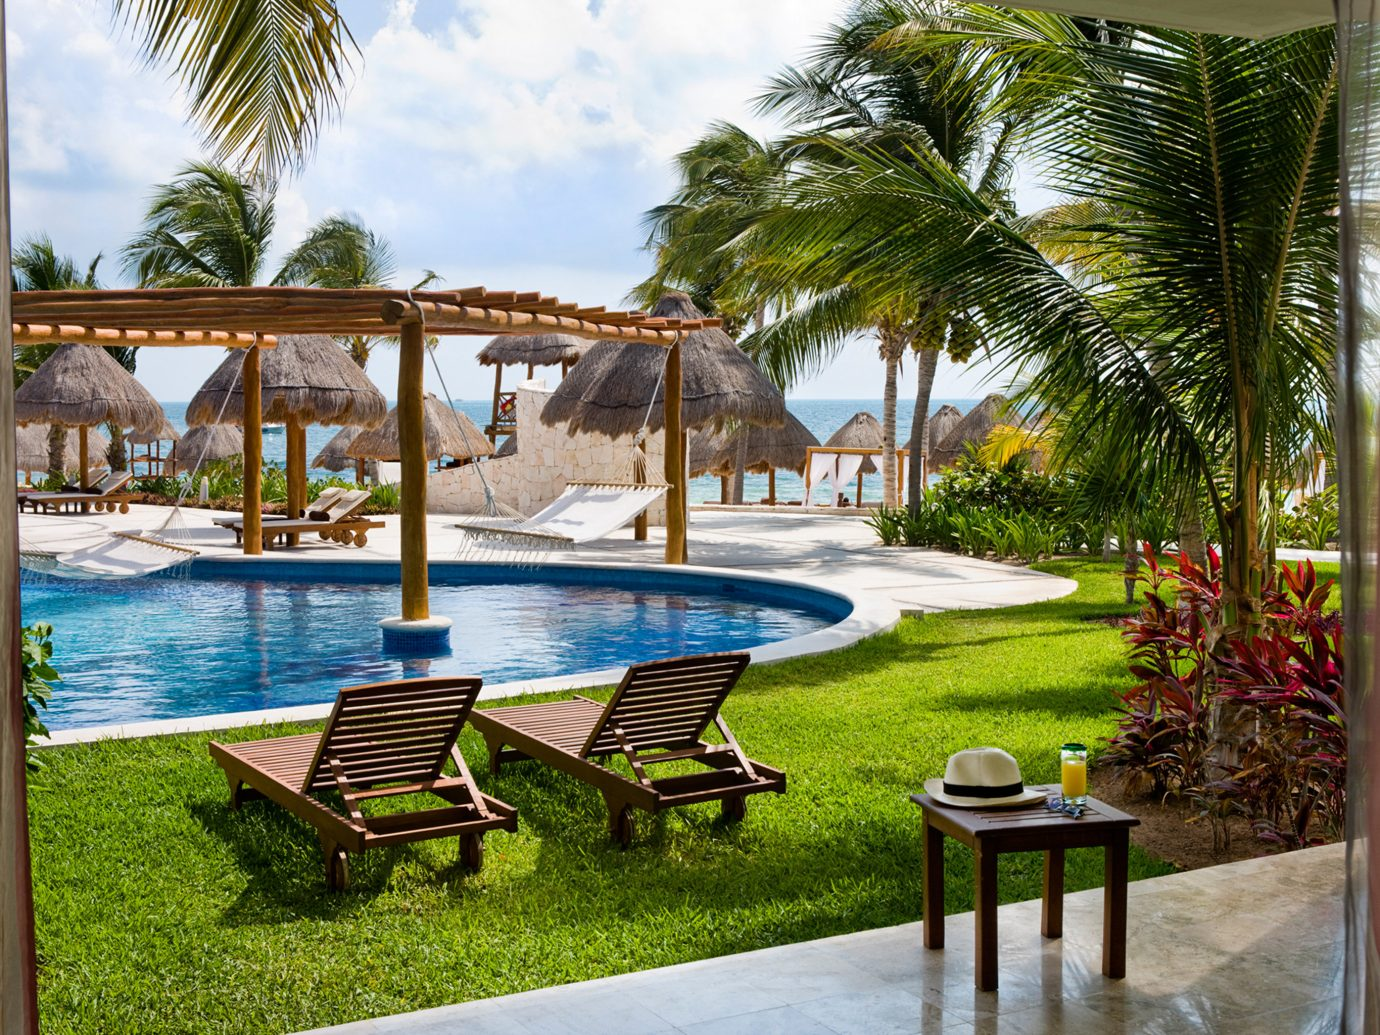 All-Inclusive Resorts Hotels Living Lounge Luxury Pool Romance Tropical outdoor tree grass chair leisure property Resort estate vacation swimming pool lawn home Villa backyard real estate hacienda caribbean area plant palm furniture